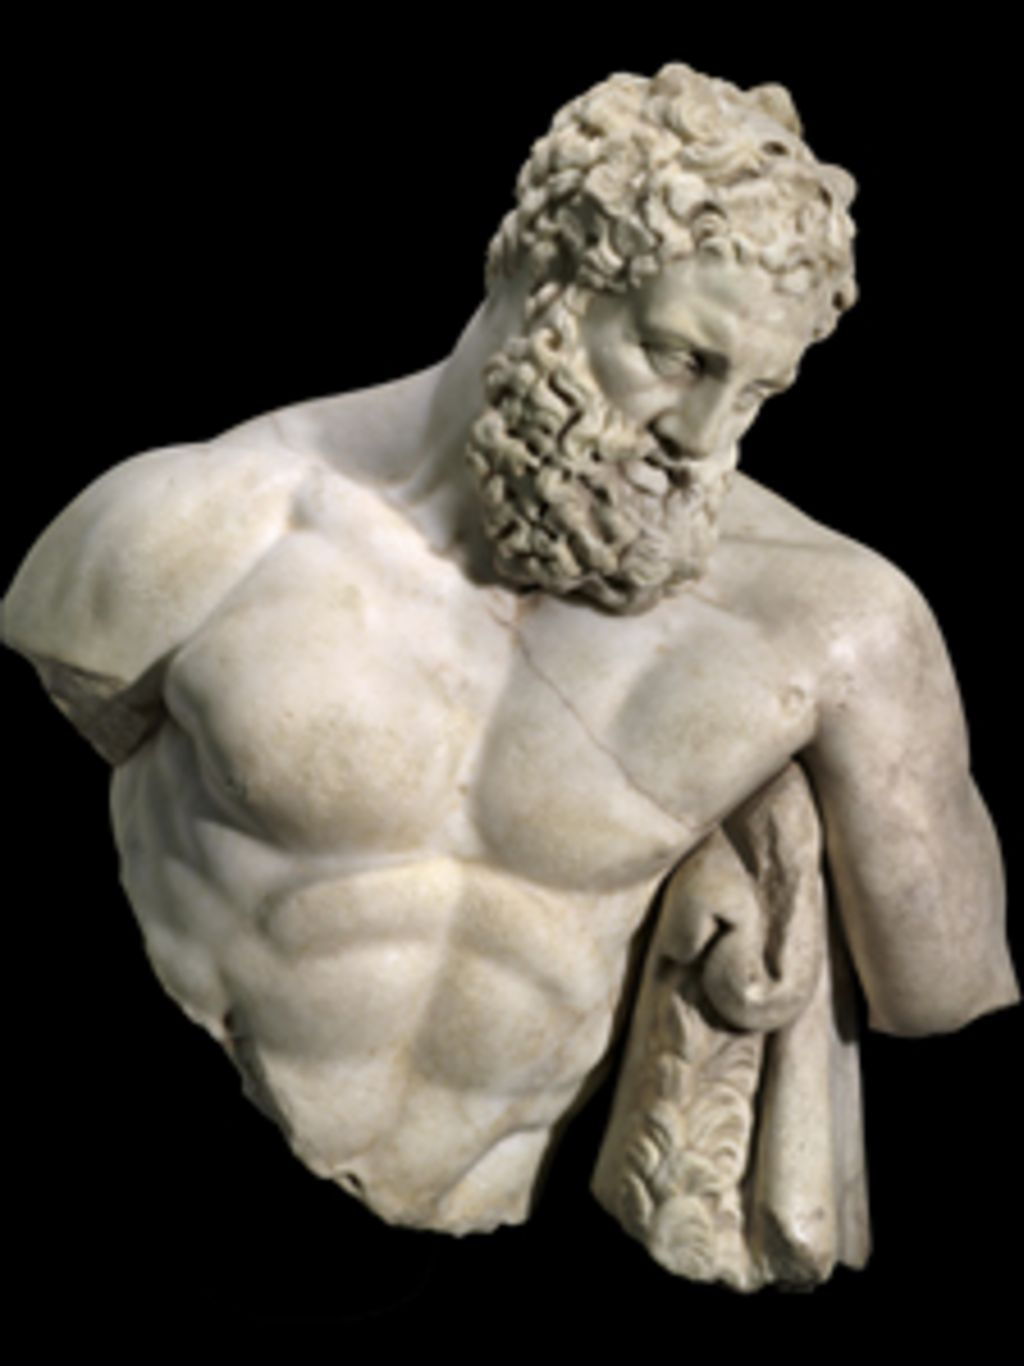 Weary Herakles bust to be returned by US to Turkey - BBC News